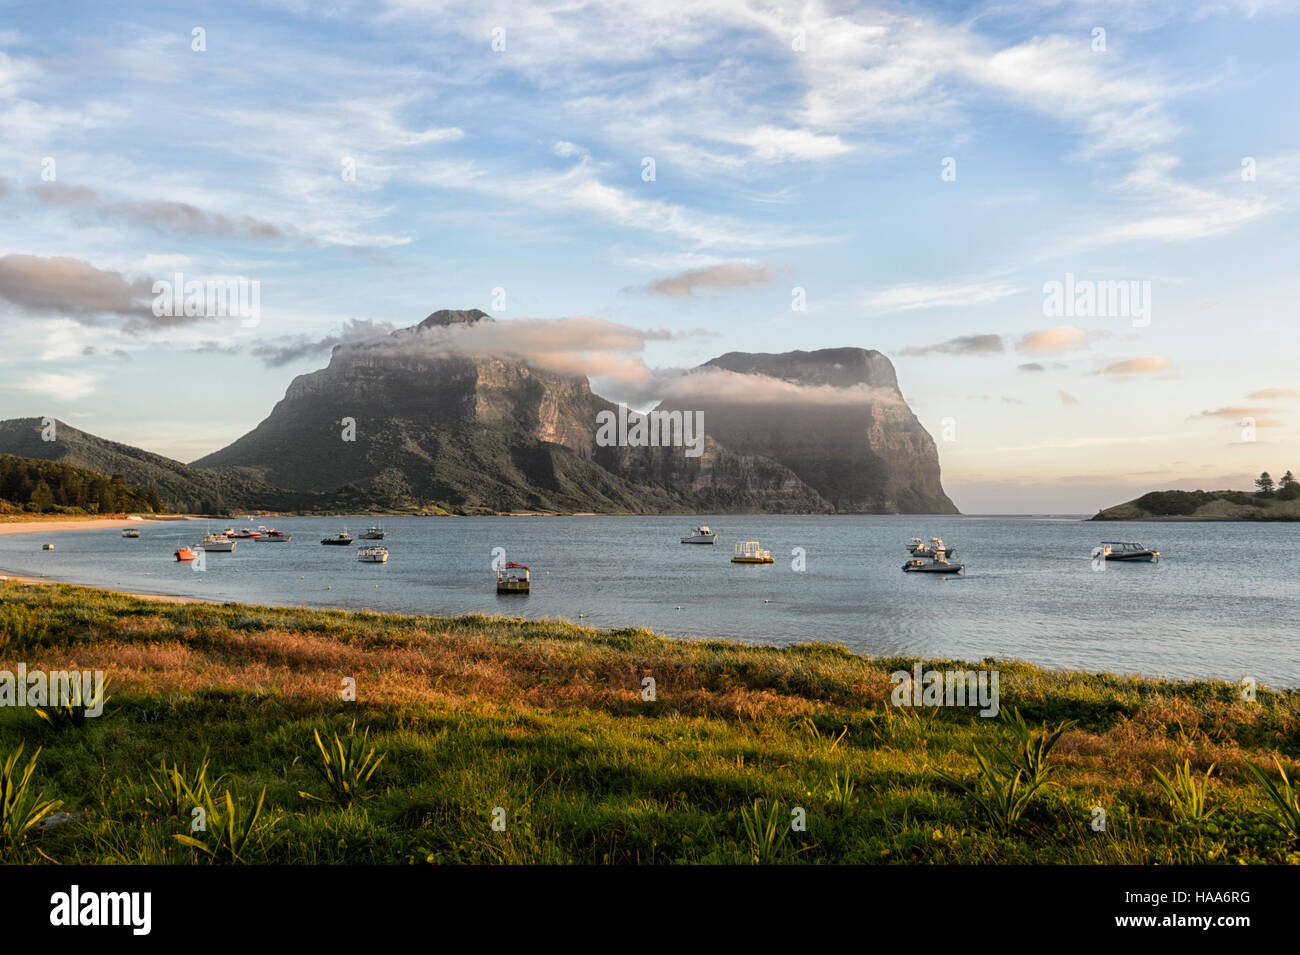 View of Mt Gower and Mt Lidgbird, Lord Howe Island, NSW, Australia - Stock Image